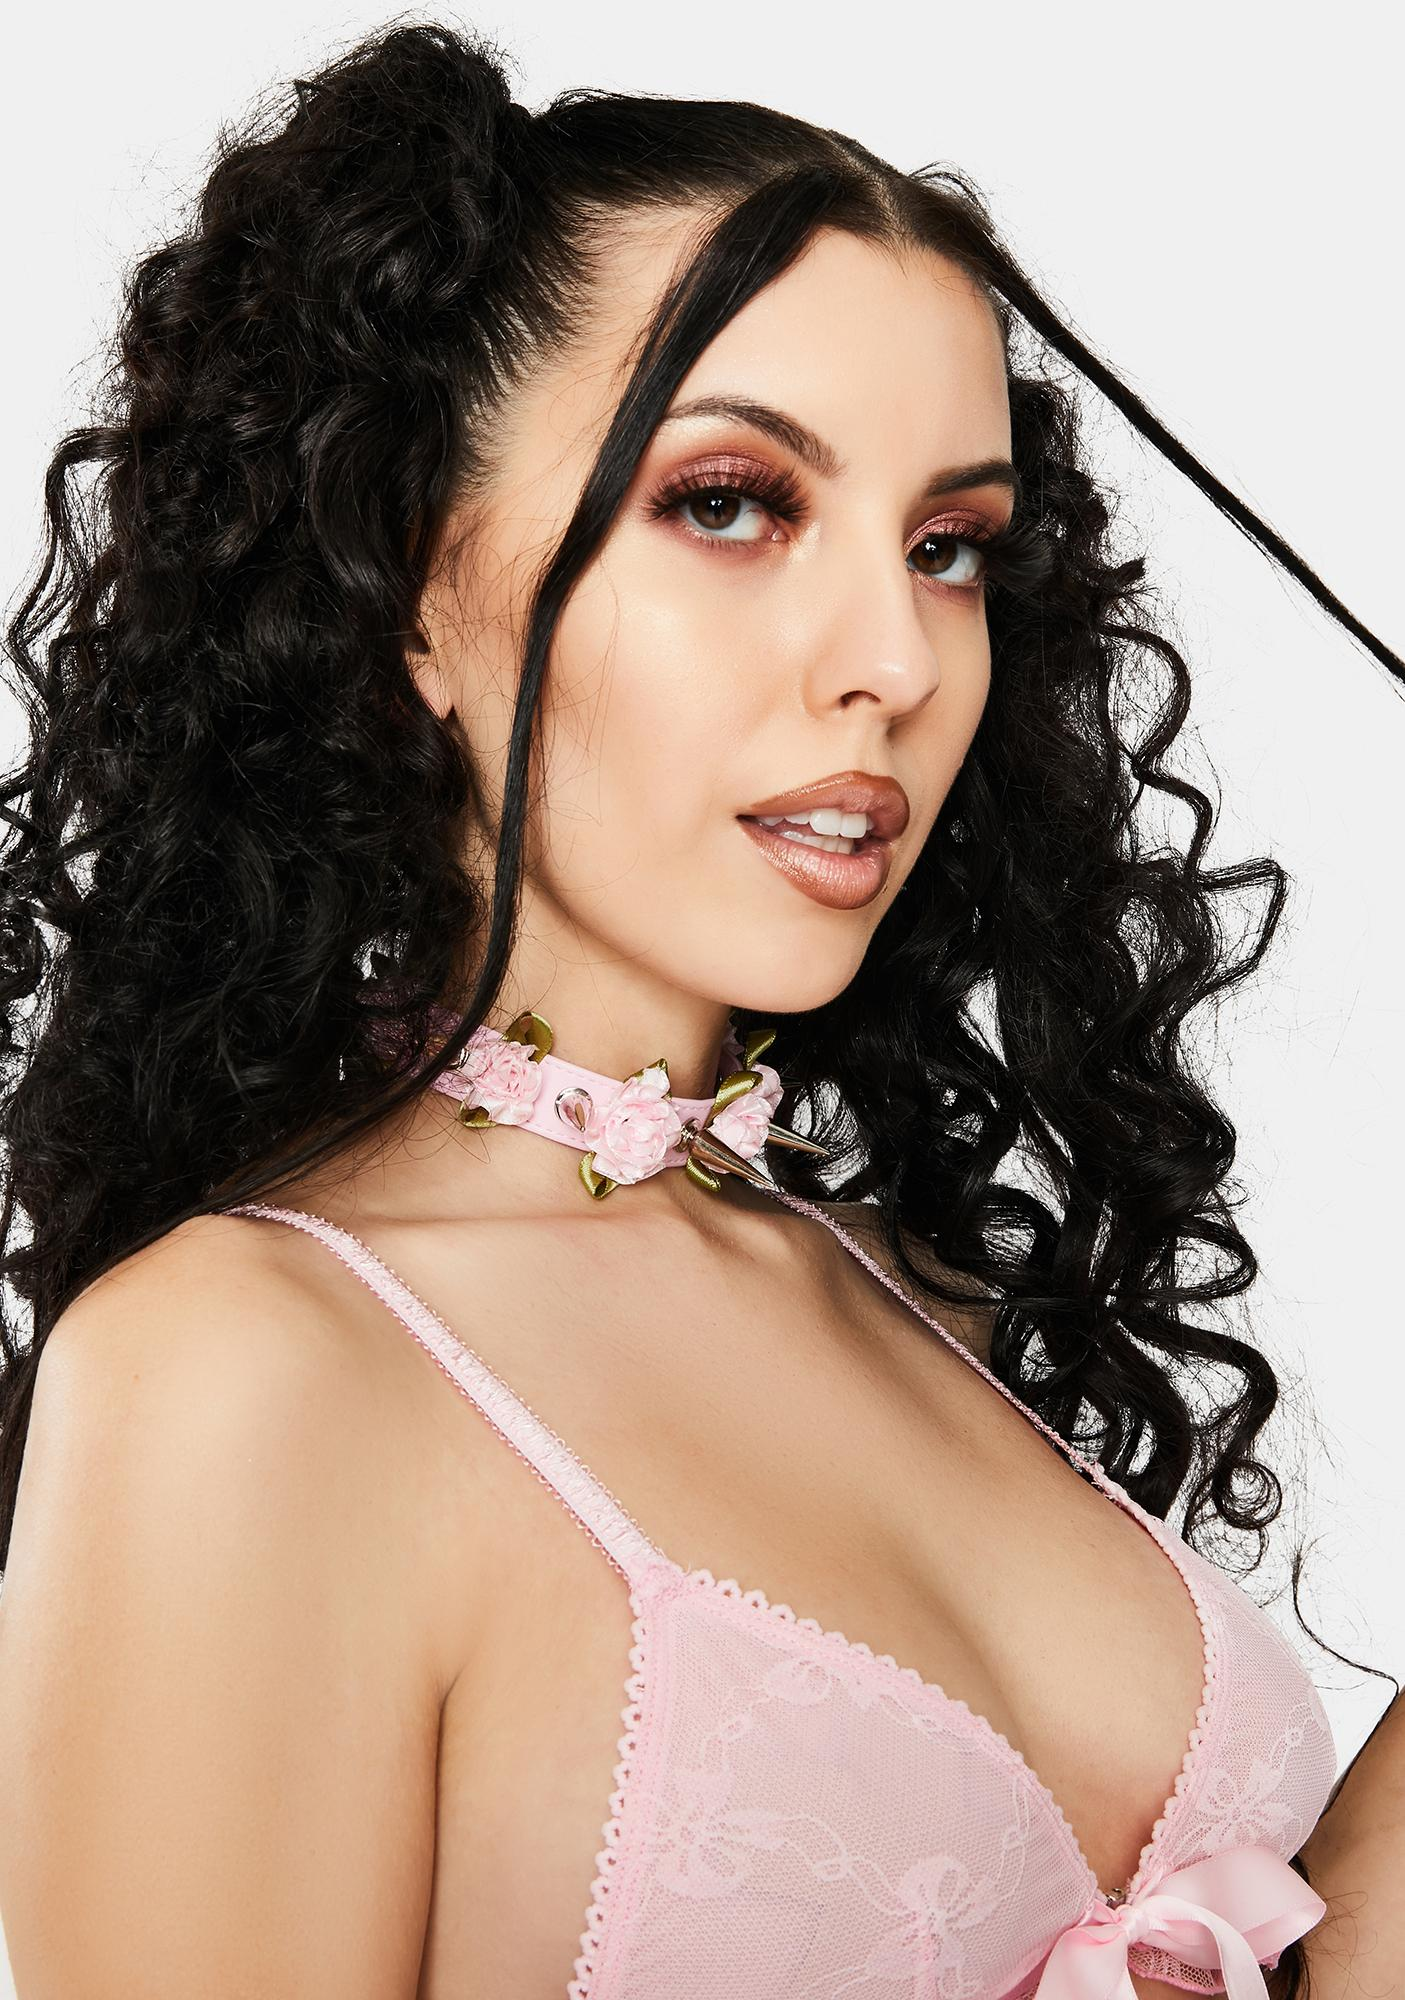 Blush Thorny Lover Spiked Tie Choker